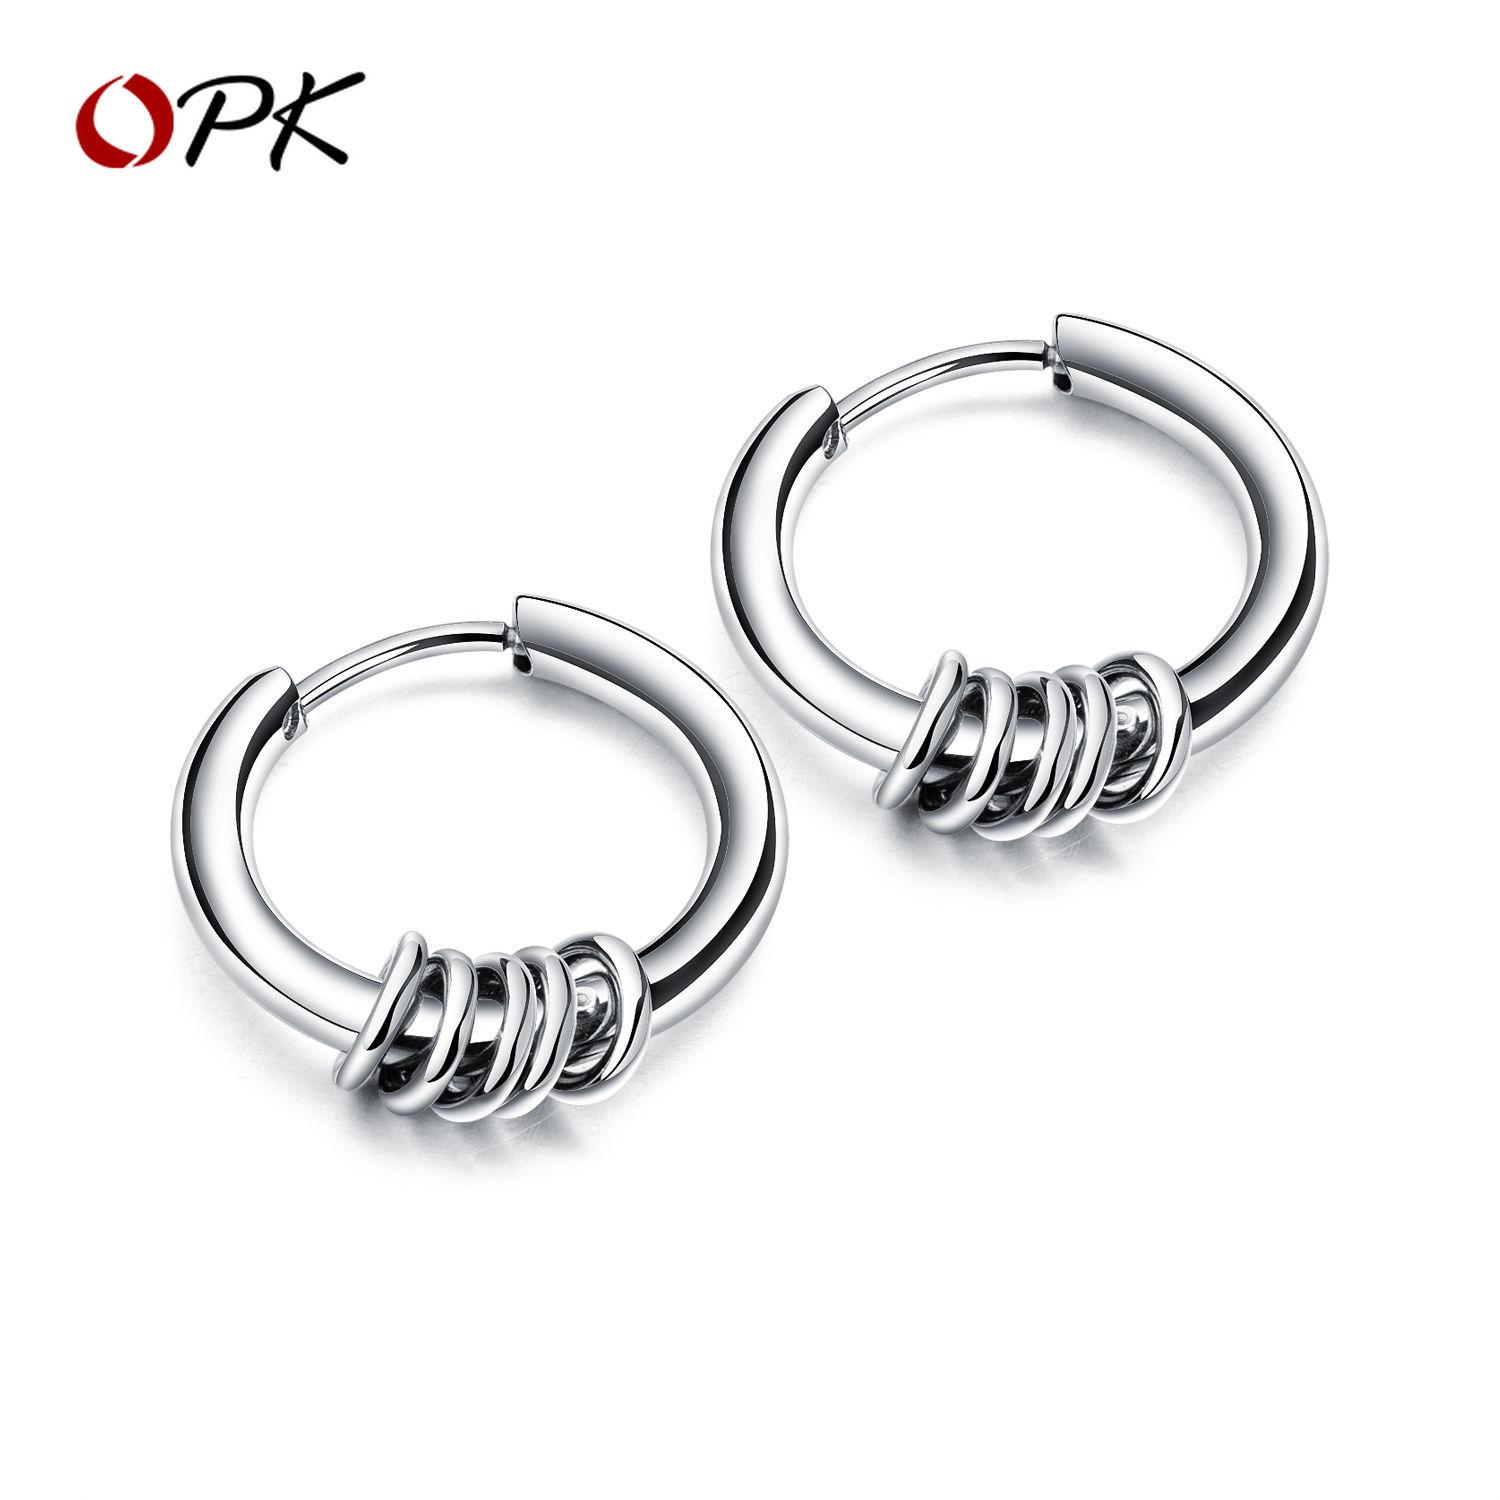 a105a5eff99dc OPK men earrings Korean version of the same paragraph titanium steel  earrings stainless steel ear ring hipster accessories wild personality  circle ...